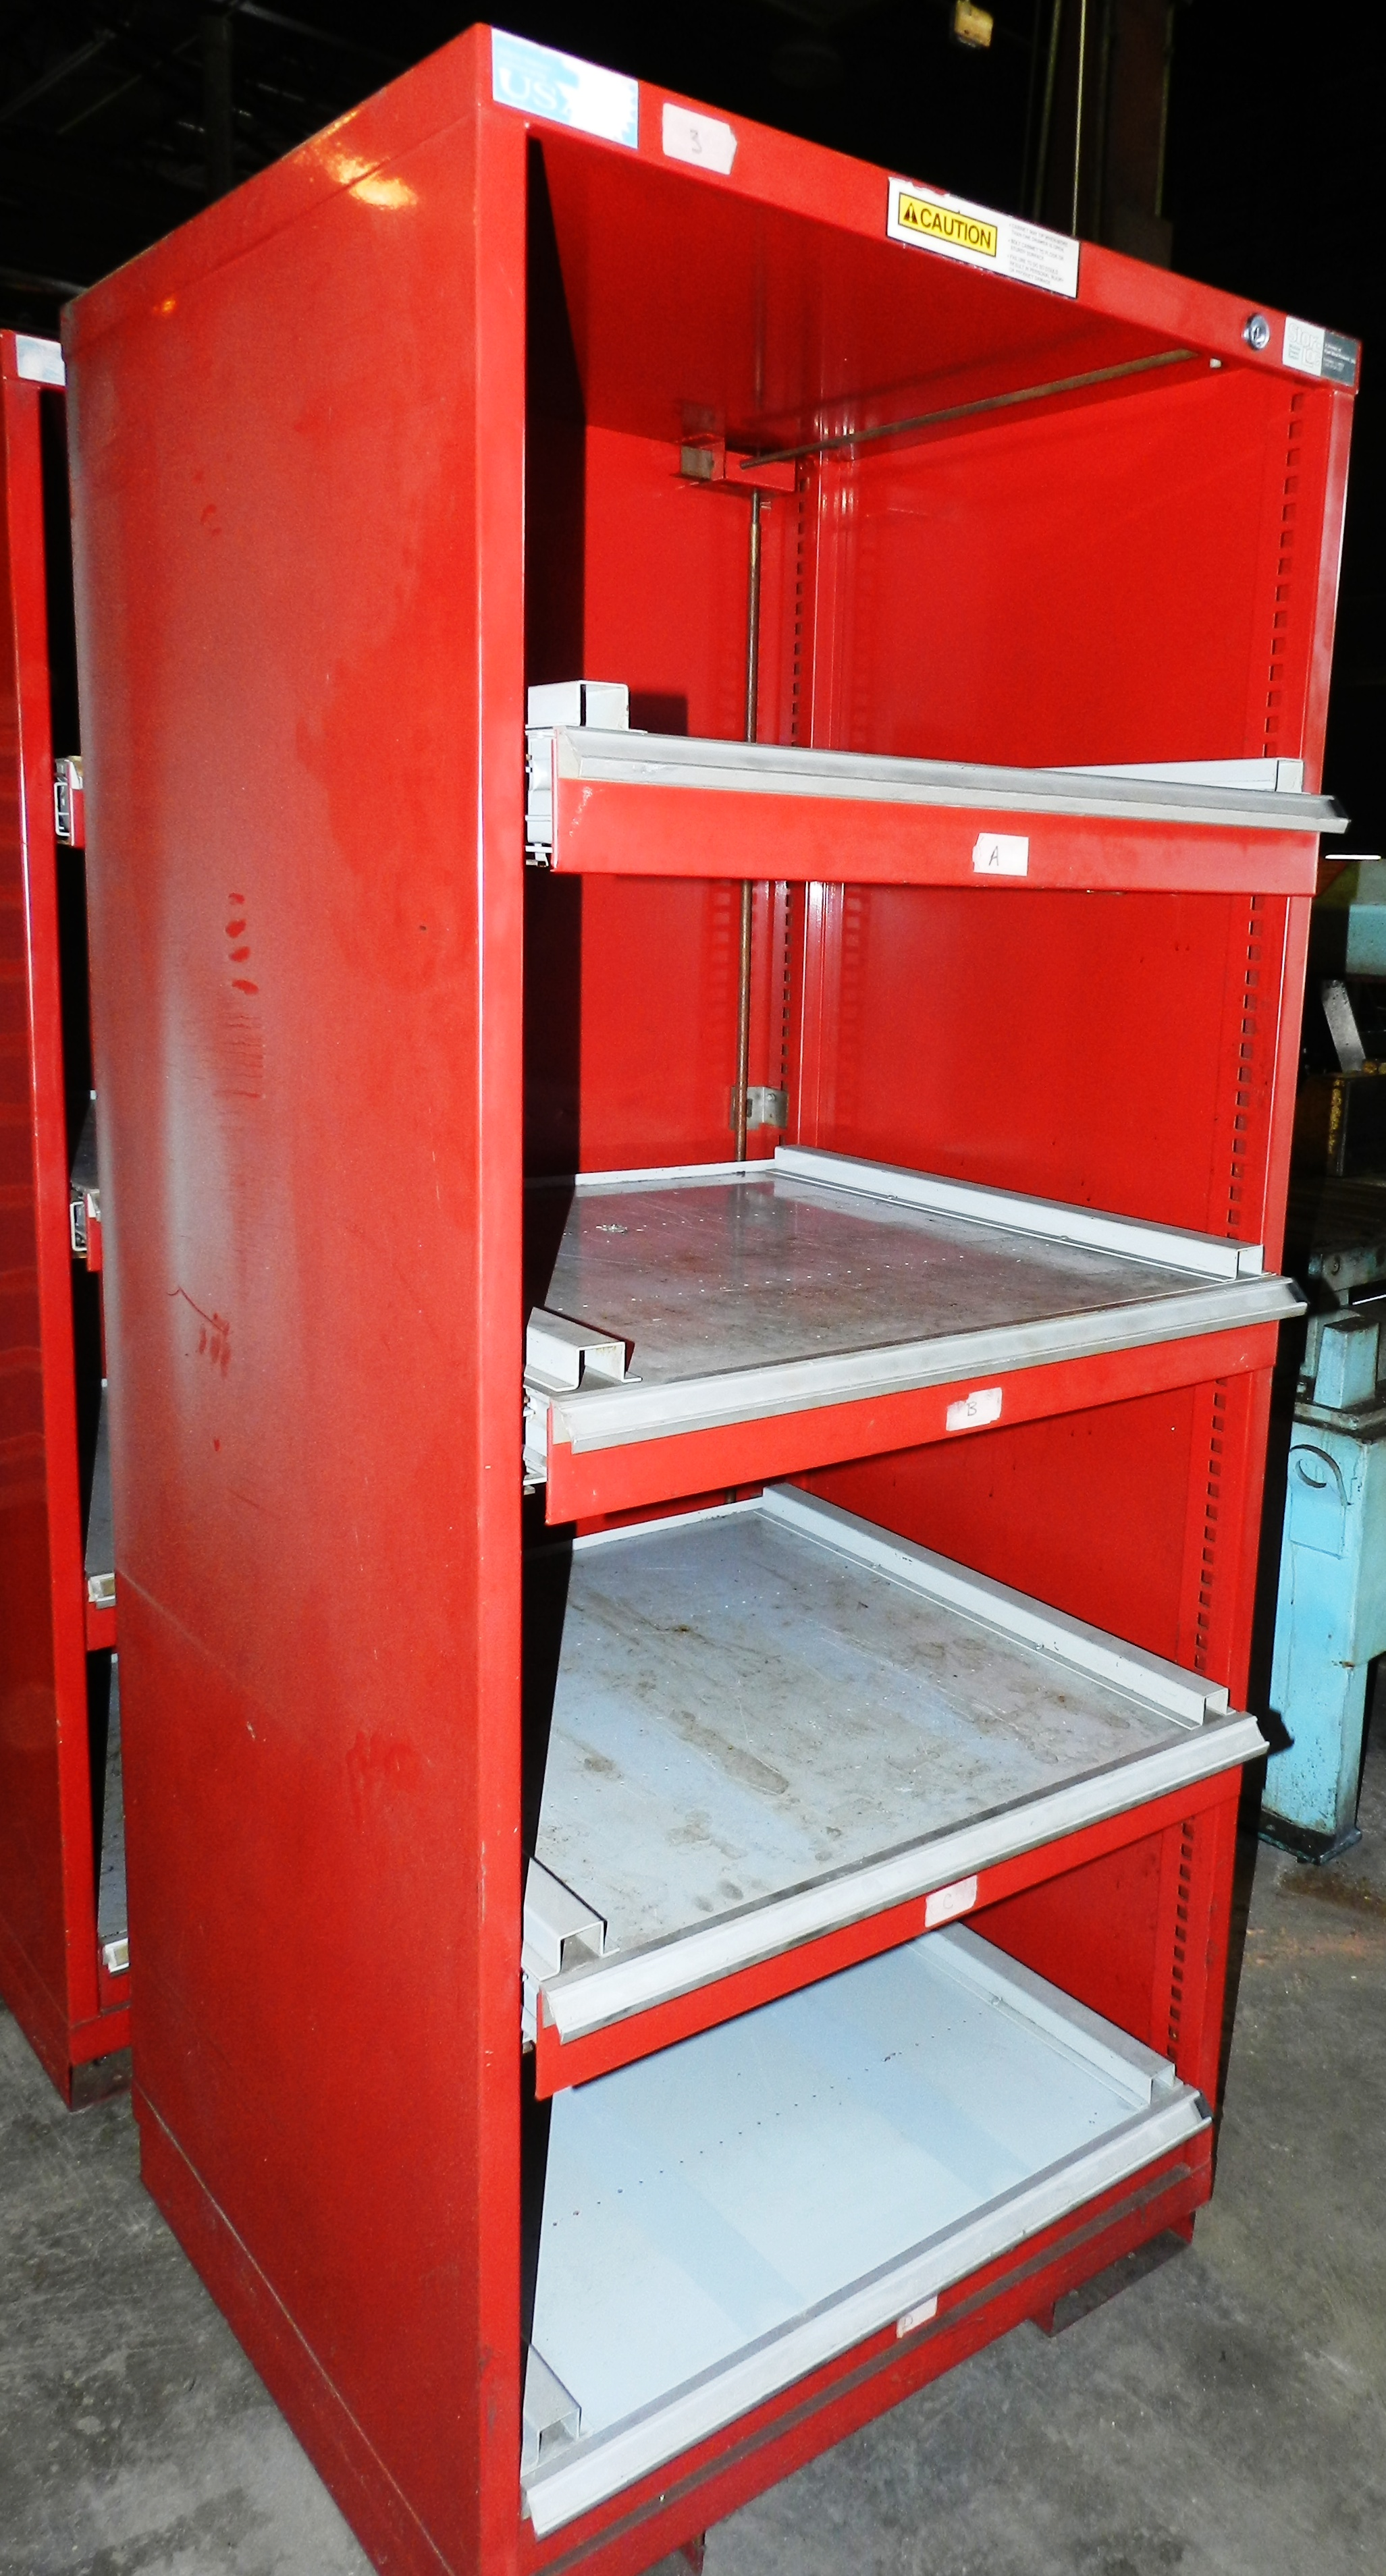 "Lot 70 - Stor-Loc Modular Drawer System 29"" x 28"" x 65.5"" Tool Cabinet"